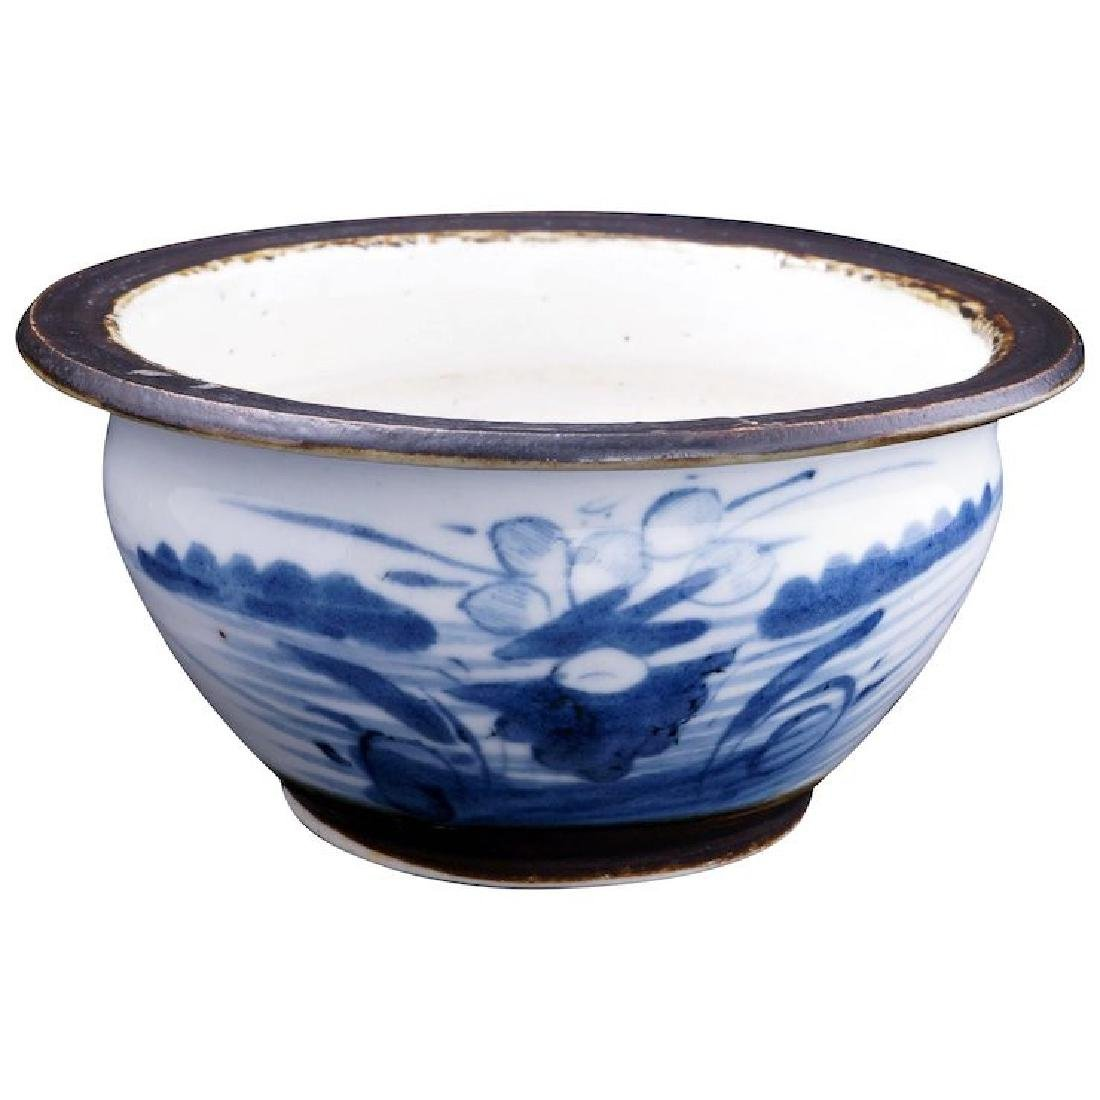 Small Chinese porcelain Canton ware blue and white bowl